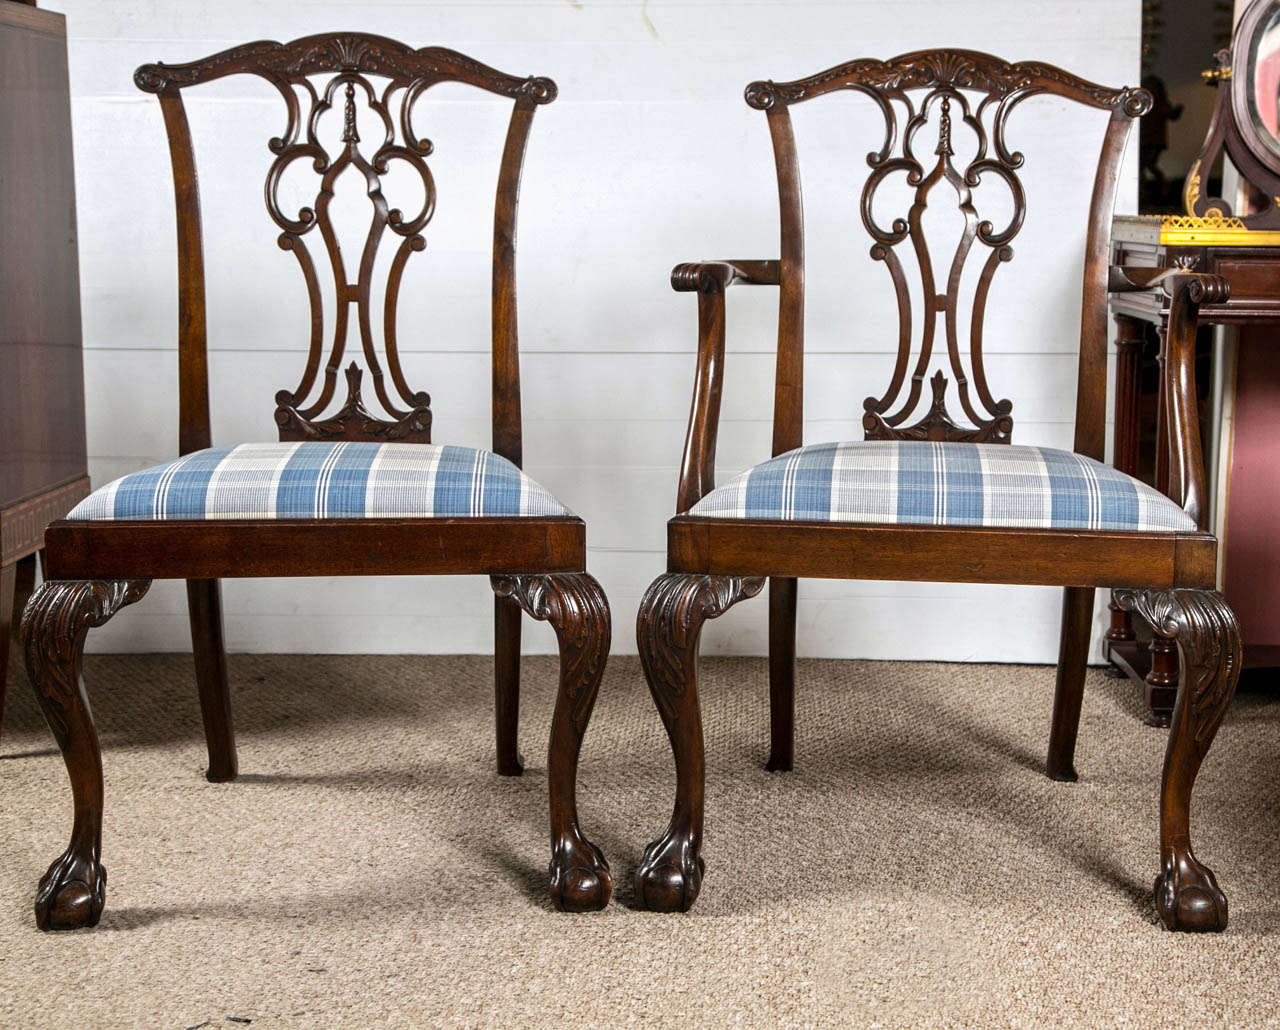 Set of Eight Chippendale Dining Chairs with Ball and Claw  : B from www.1stdibs.com size 1280 x 1030 jpeg 206kB